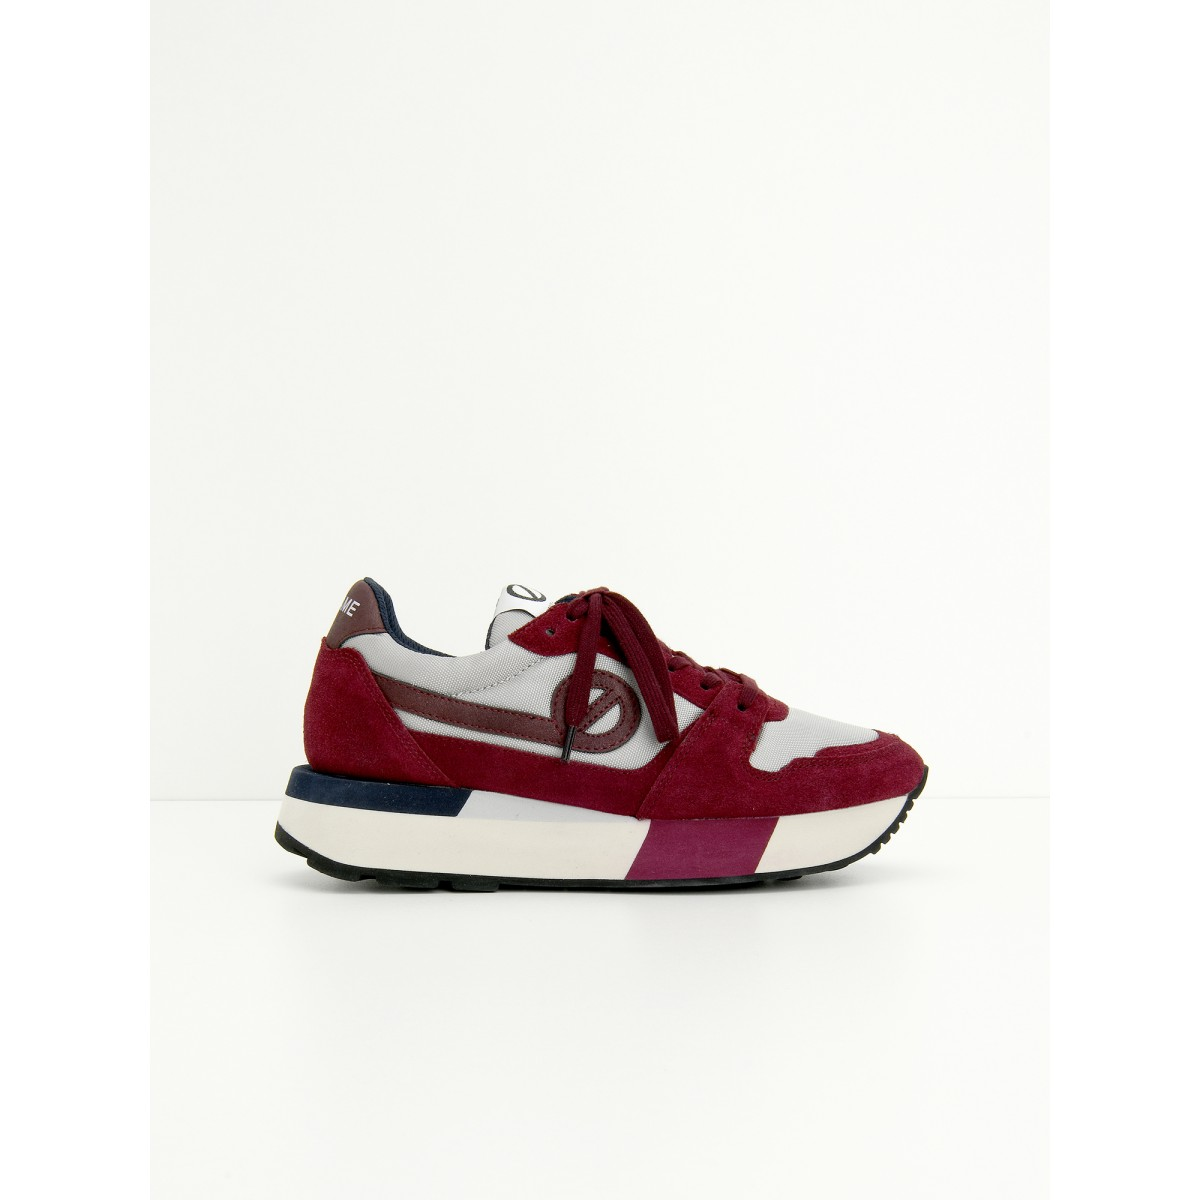 No Name BODY JOGGER - BIG NYLON/SUEDE - PERLE/BORDEAUX